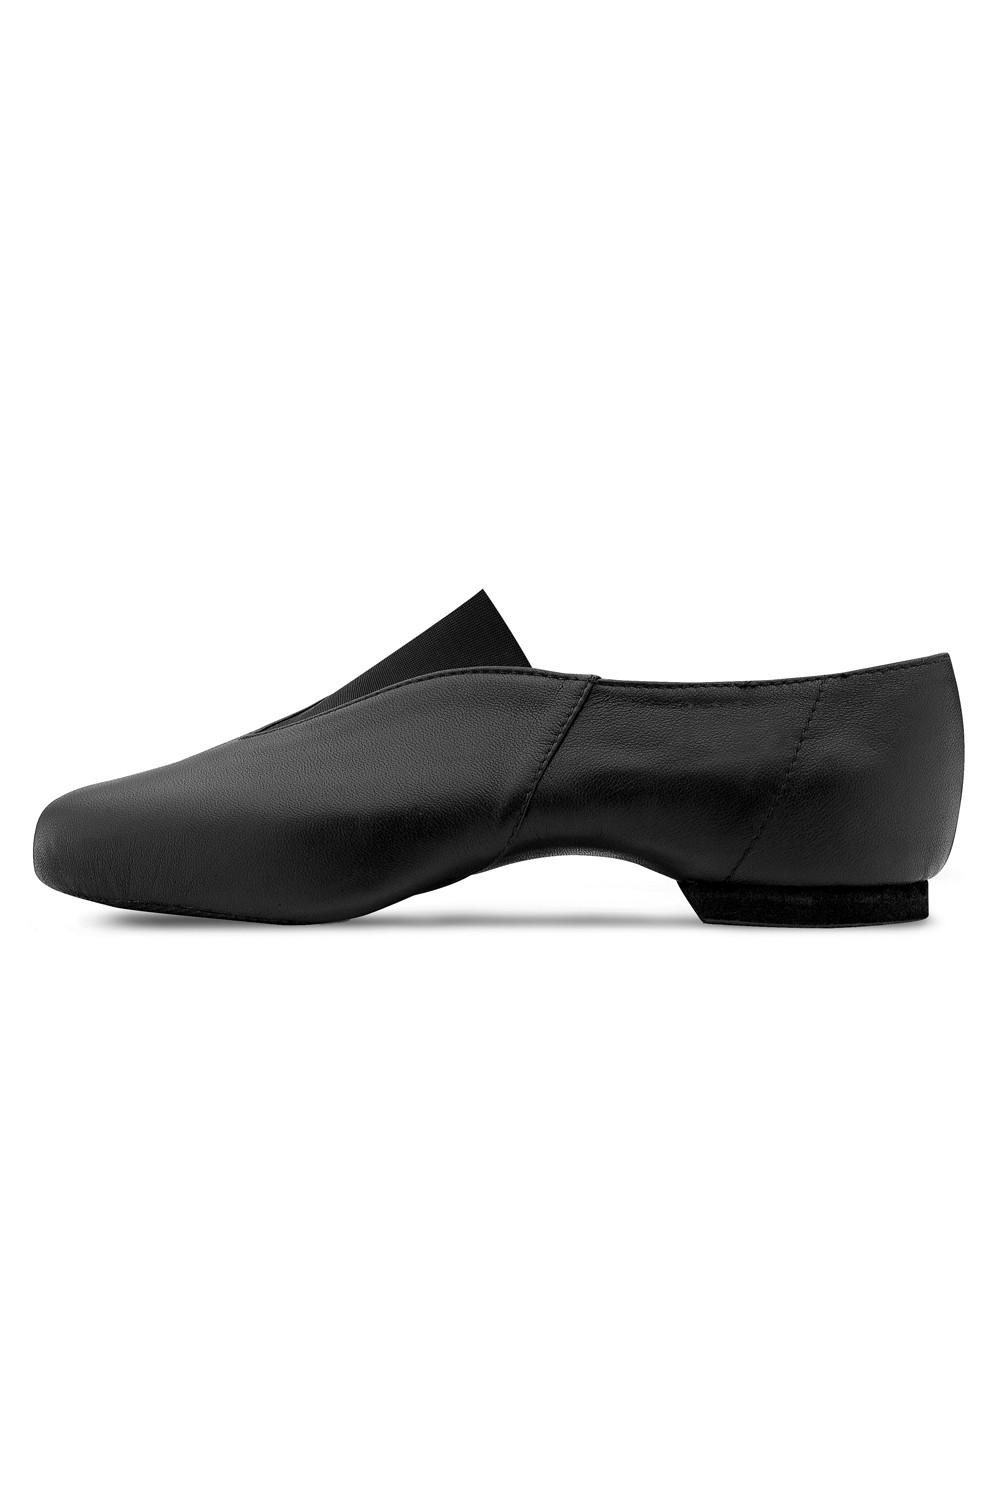 Pure Jazz - Femme Women's Jazz Shoes